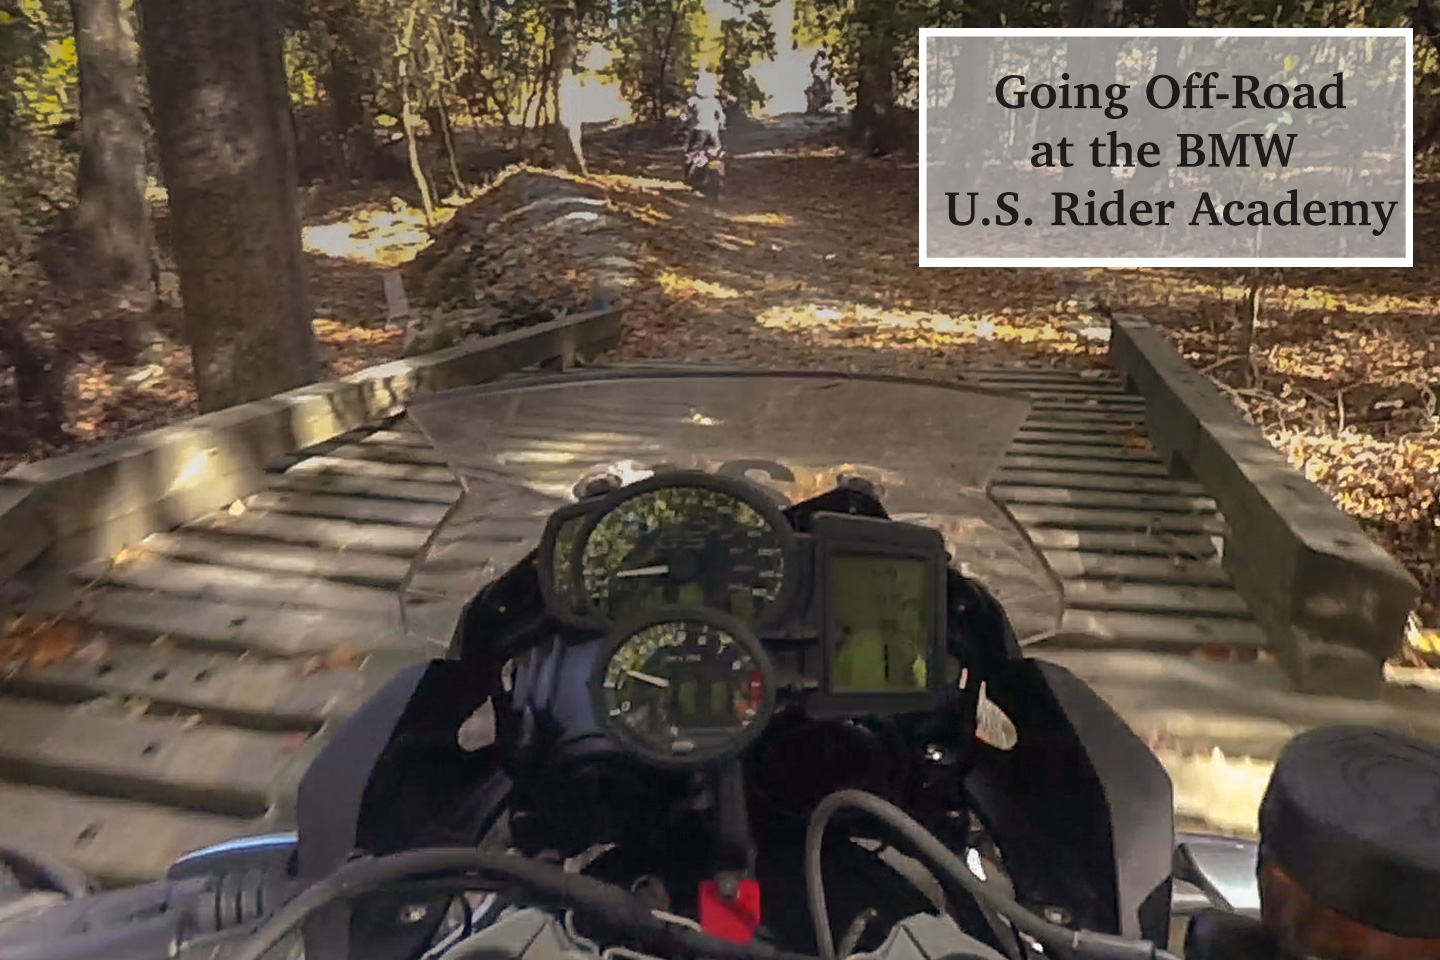 Going Off-Road at the BMW U.S. Rider Academy